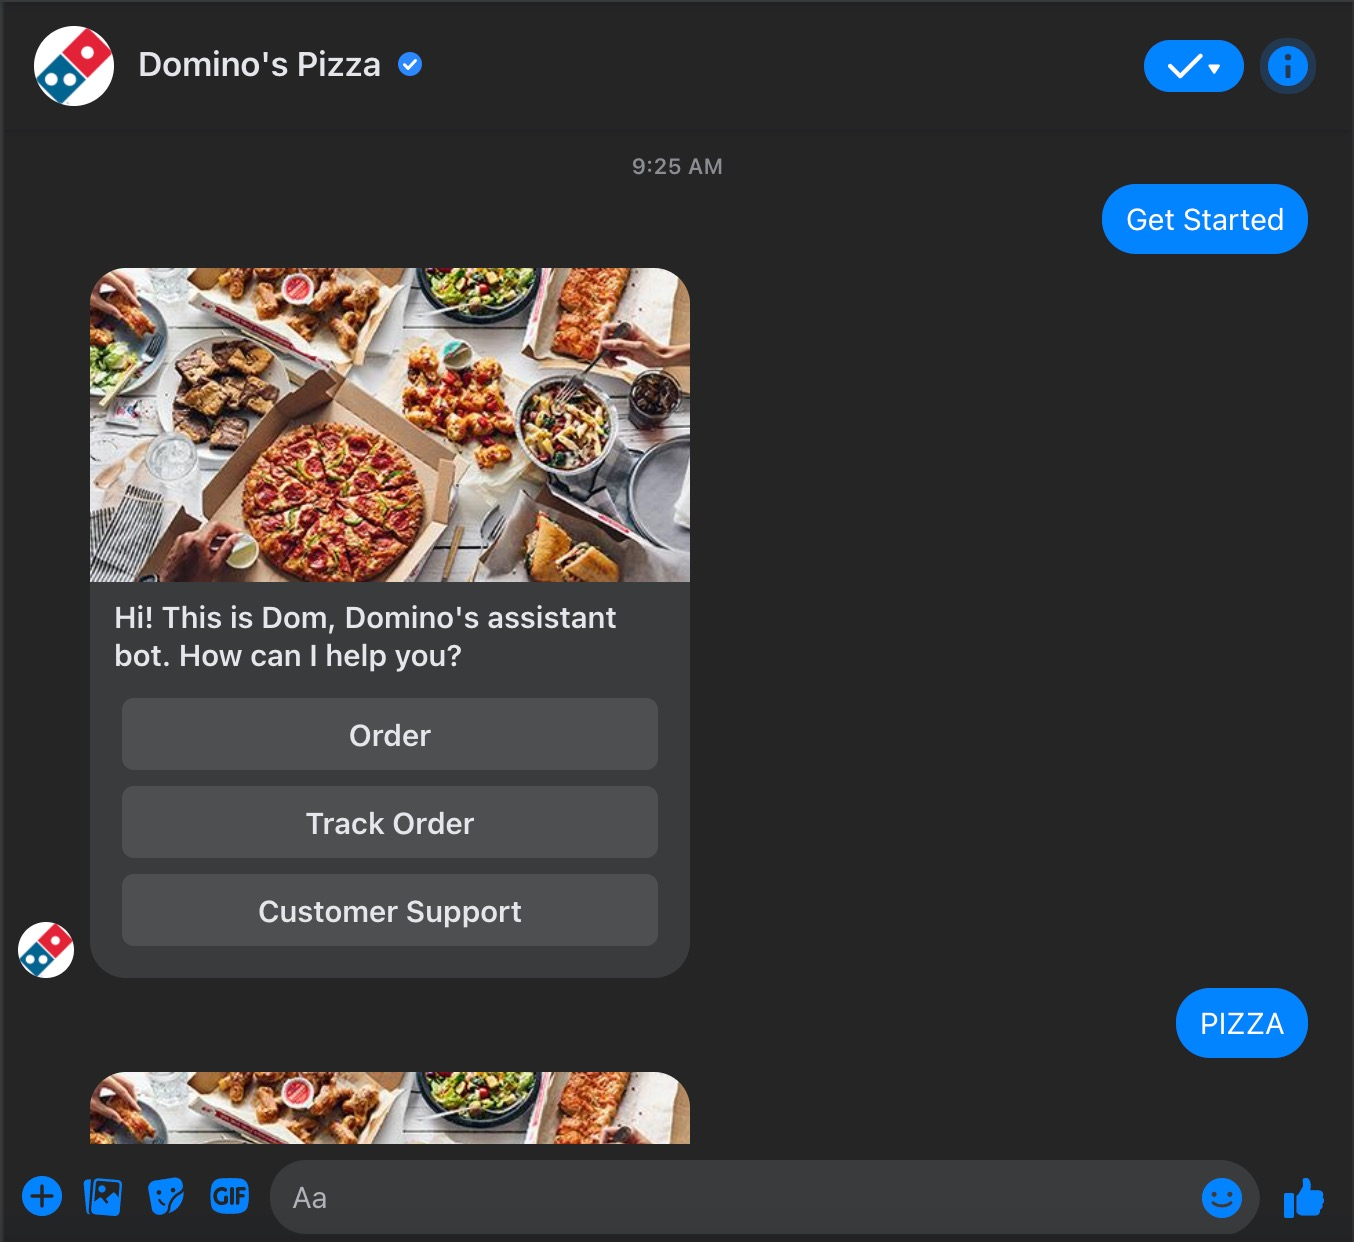 Domino's Pizza Facebook chatbot